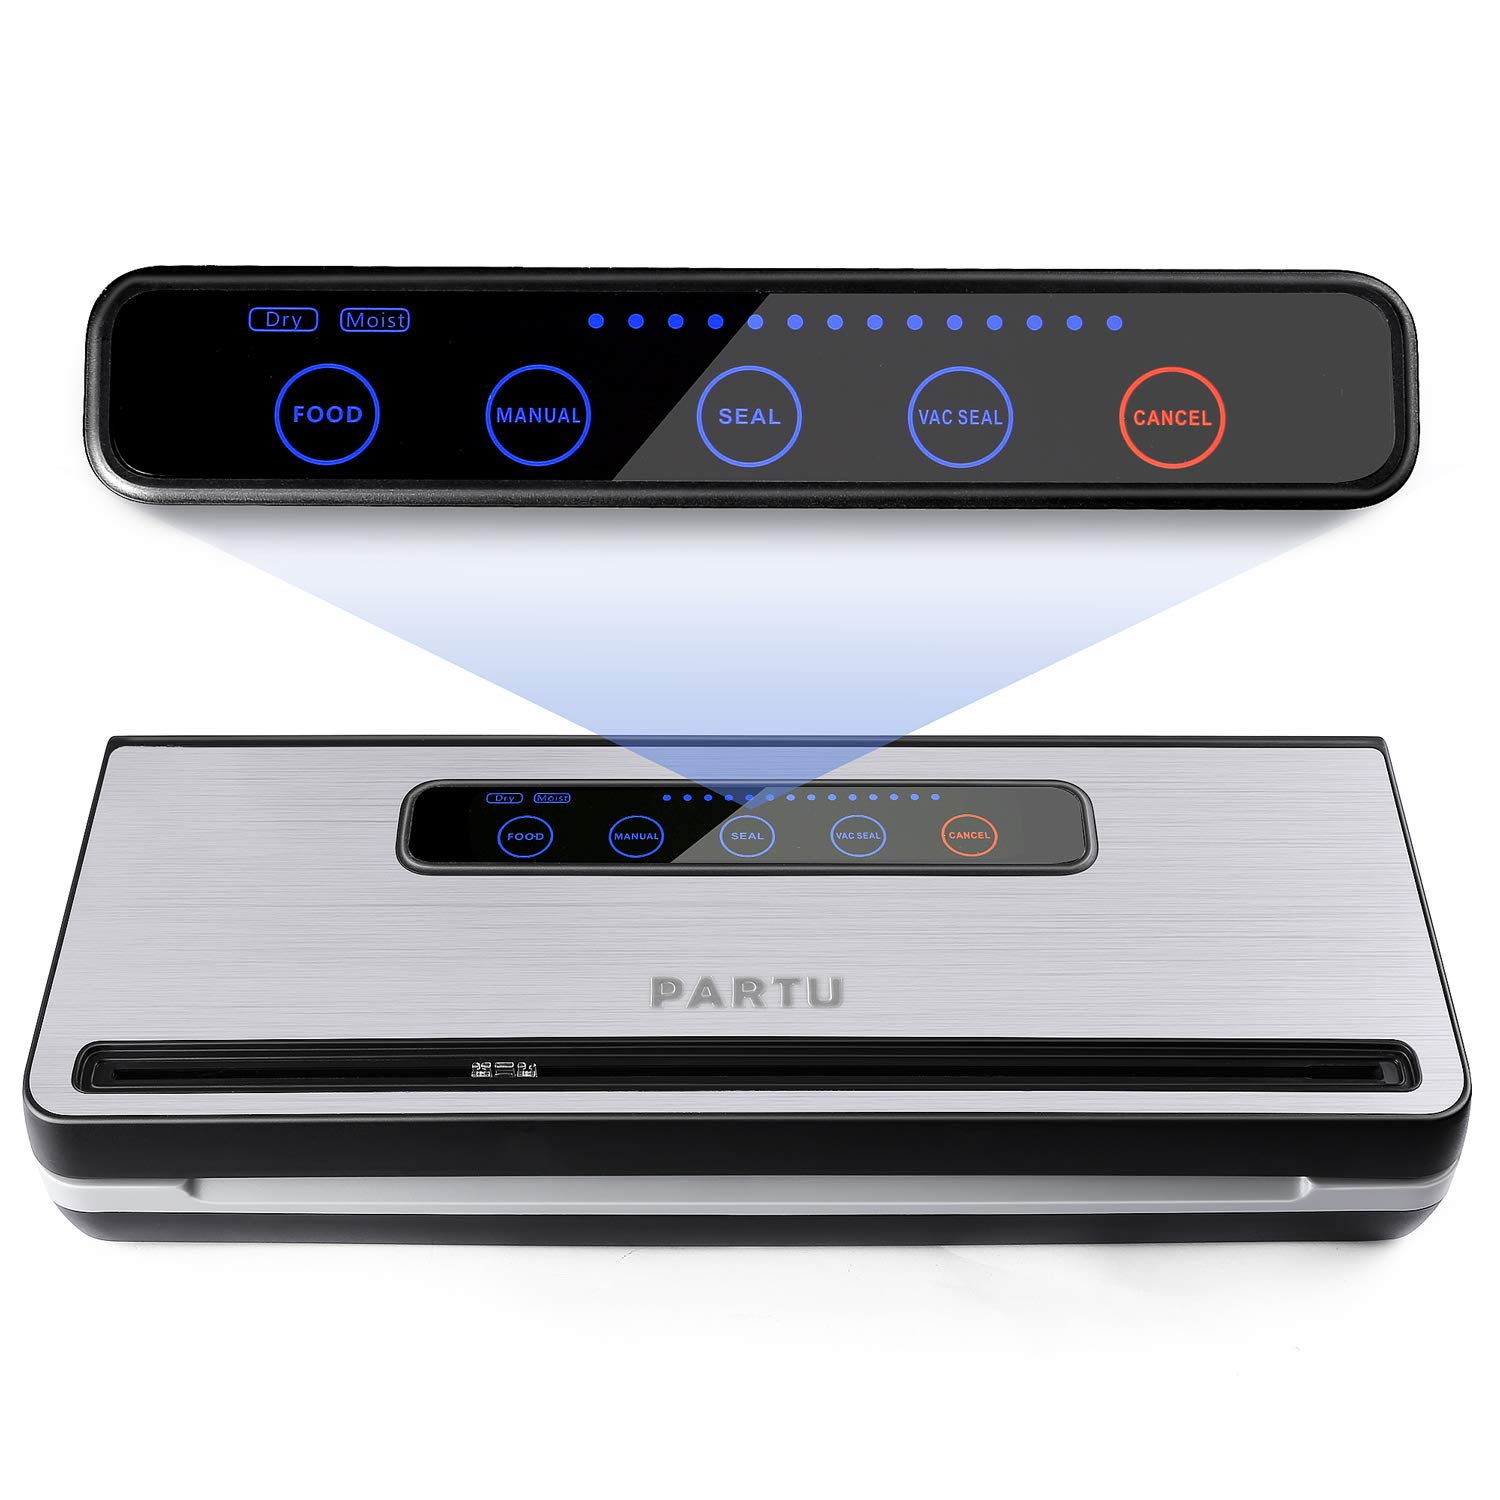 PARTU Vacuum Sealer Machine For Keeping Fresh On Summer Dry/Moist Mode    Include Vacuum Bag (11'' x 118'')Applicable to External Suction Pipe/Fresh-keeping Tank And Clothes Storage Bag